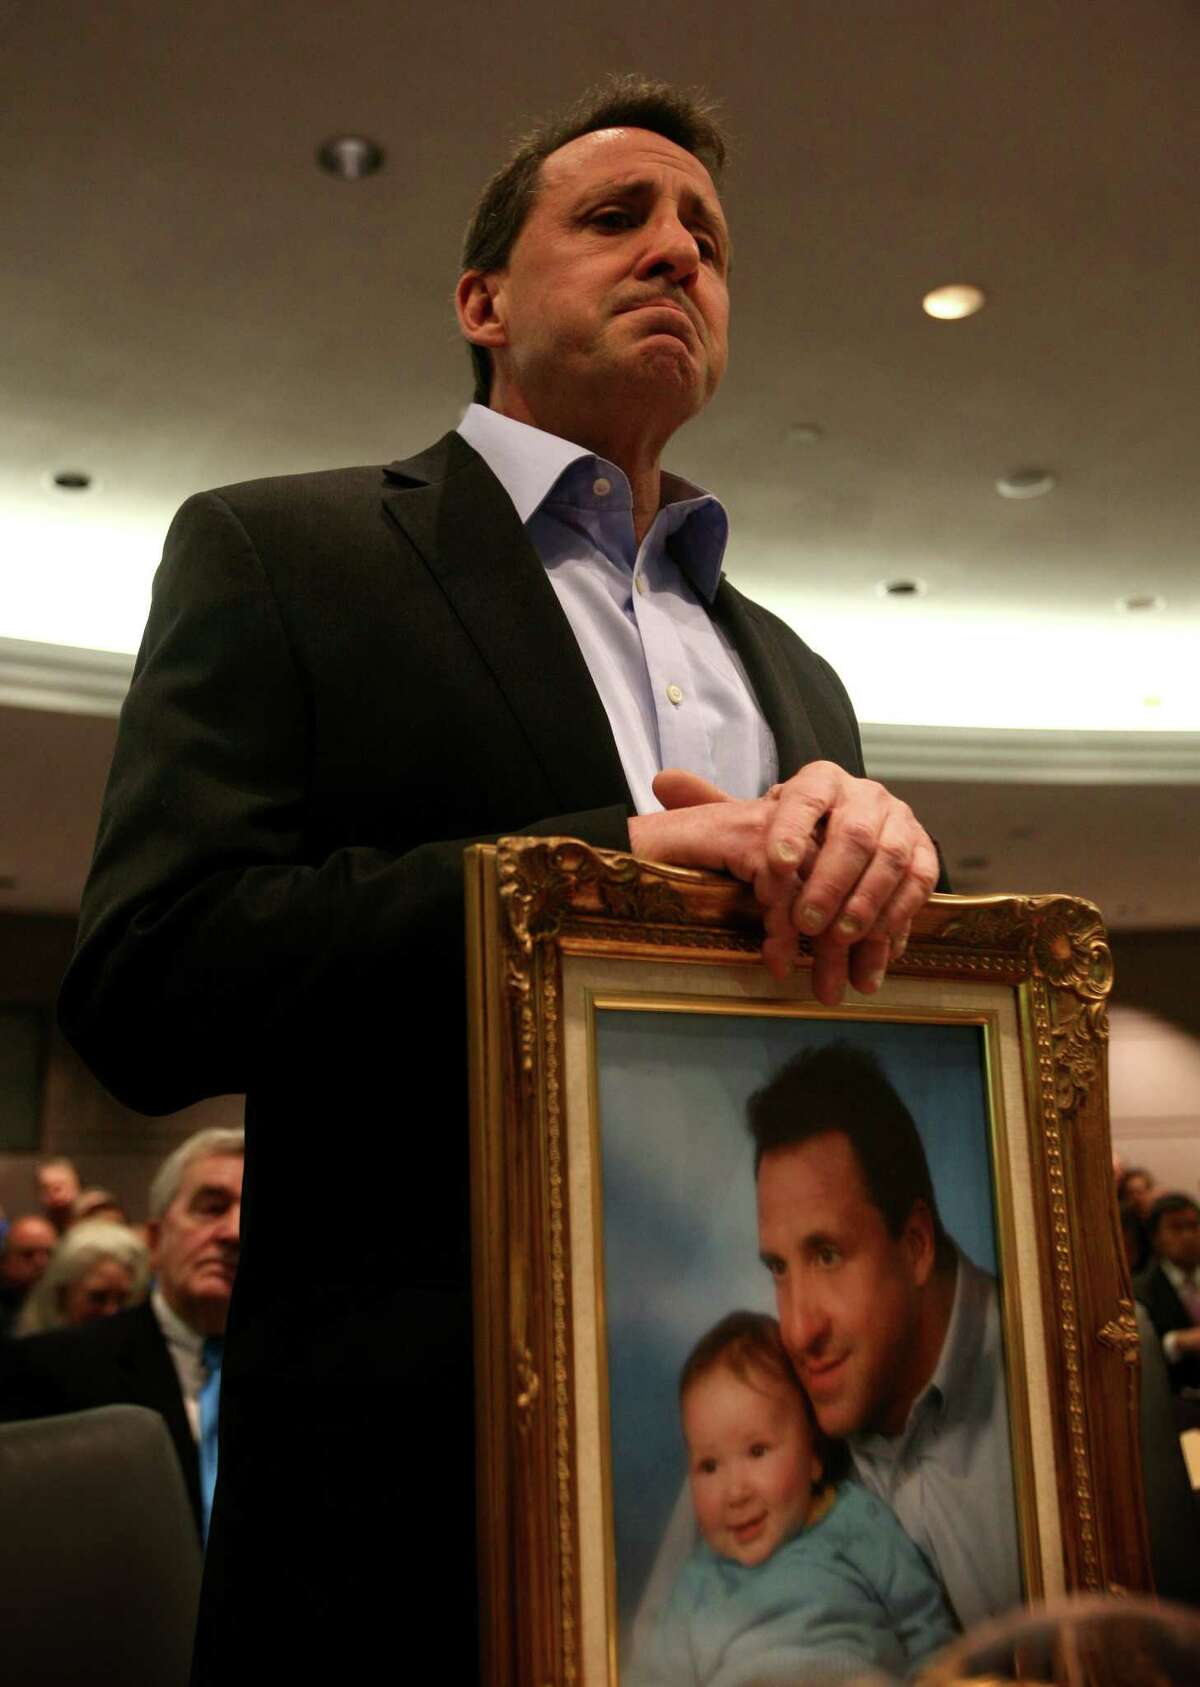 Neil Heslin, of Shelton, holds a portrait of himself and his son, Jesse Lewis, one of the children killed in the Sandy Hook School shooting, during testimony before the Gun Violence Prevention Working Group at the Legislative Office Building in Hartford, Conn. on Monday, January 28, 2013.